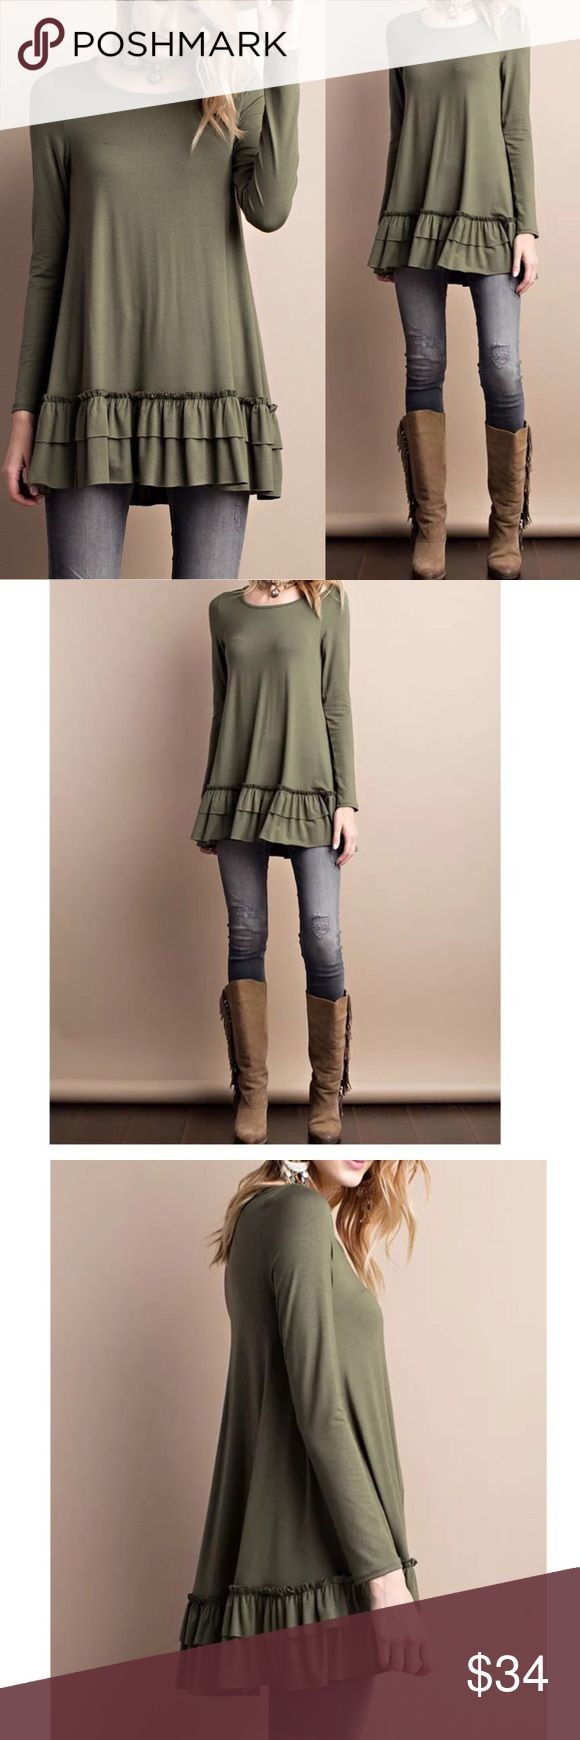 """ARRIVAL! Long sleeve olive round neck tunic top Long sleeve Round neck soft heavy rayon ruffle tunic top  Can be worn as a top itself or under a top for layered look   Color: olive  Fabric: RAYON  Content: 95% RAYON, 5% SPANDEX  Made In: United States  Super soft fabric with stretch  Relaxed fit  MEASUREMENTS:  Small: Armpit to Armpit: 19"""" Length: 31""""   Medium: Armpit to Armpit: 20"""" Length: 31.5""""  Large: Armpit to Armpit: 21"""" Length: 32"""" Pink Peplum Boutique Tops Tunics"""